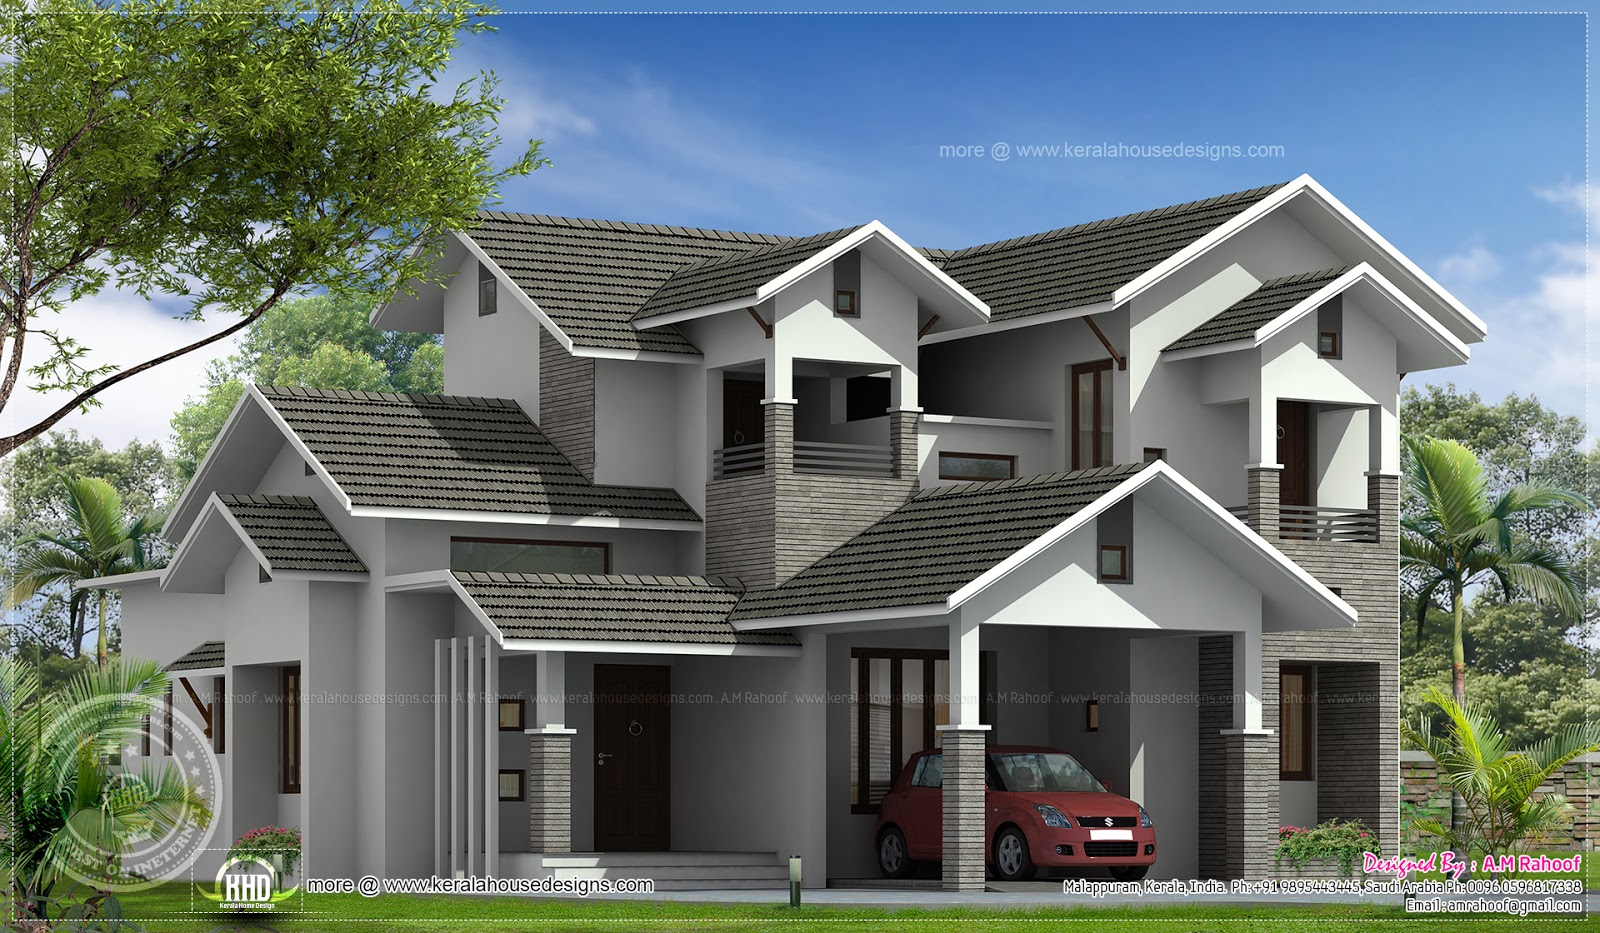 Double storied sloping roof home design kerala home for 1000 sq ft house front elevation